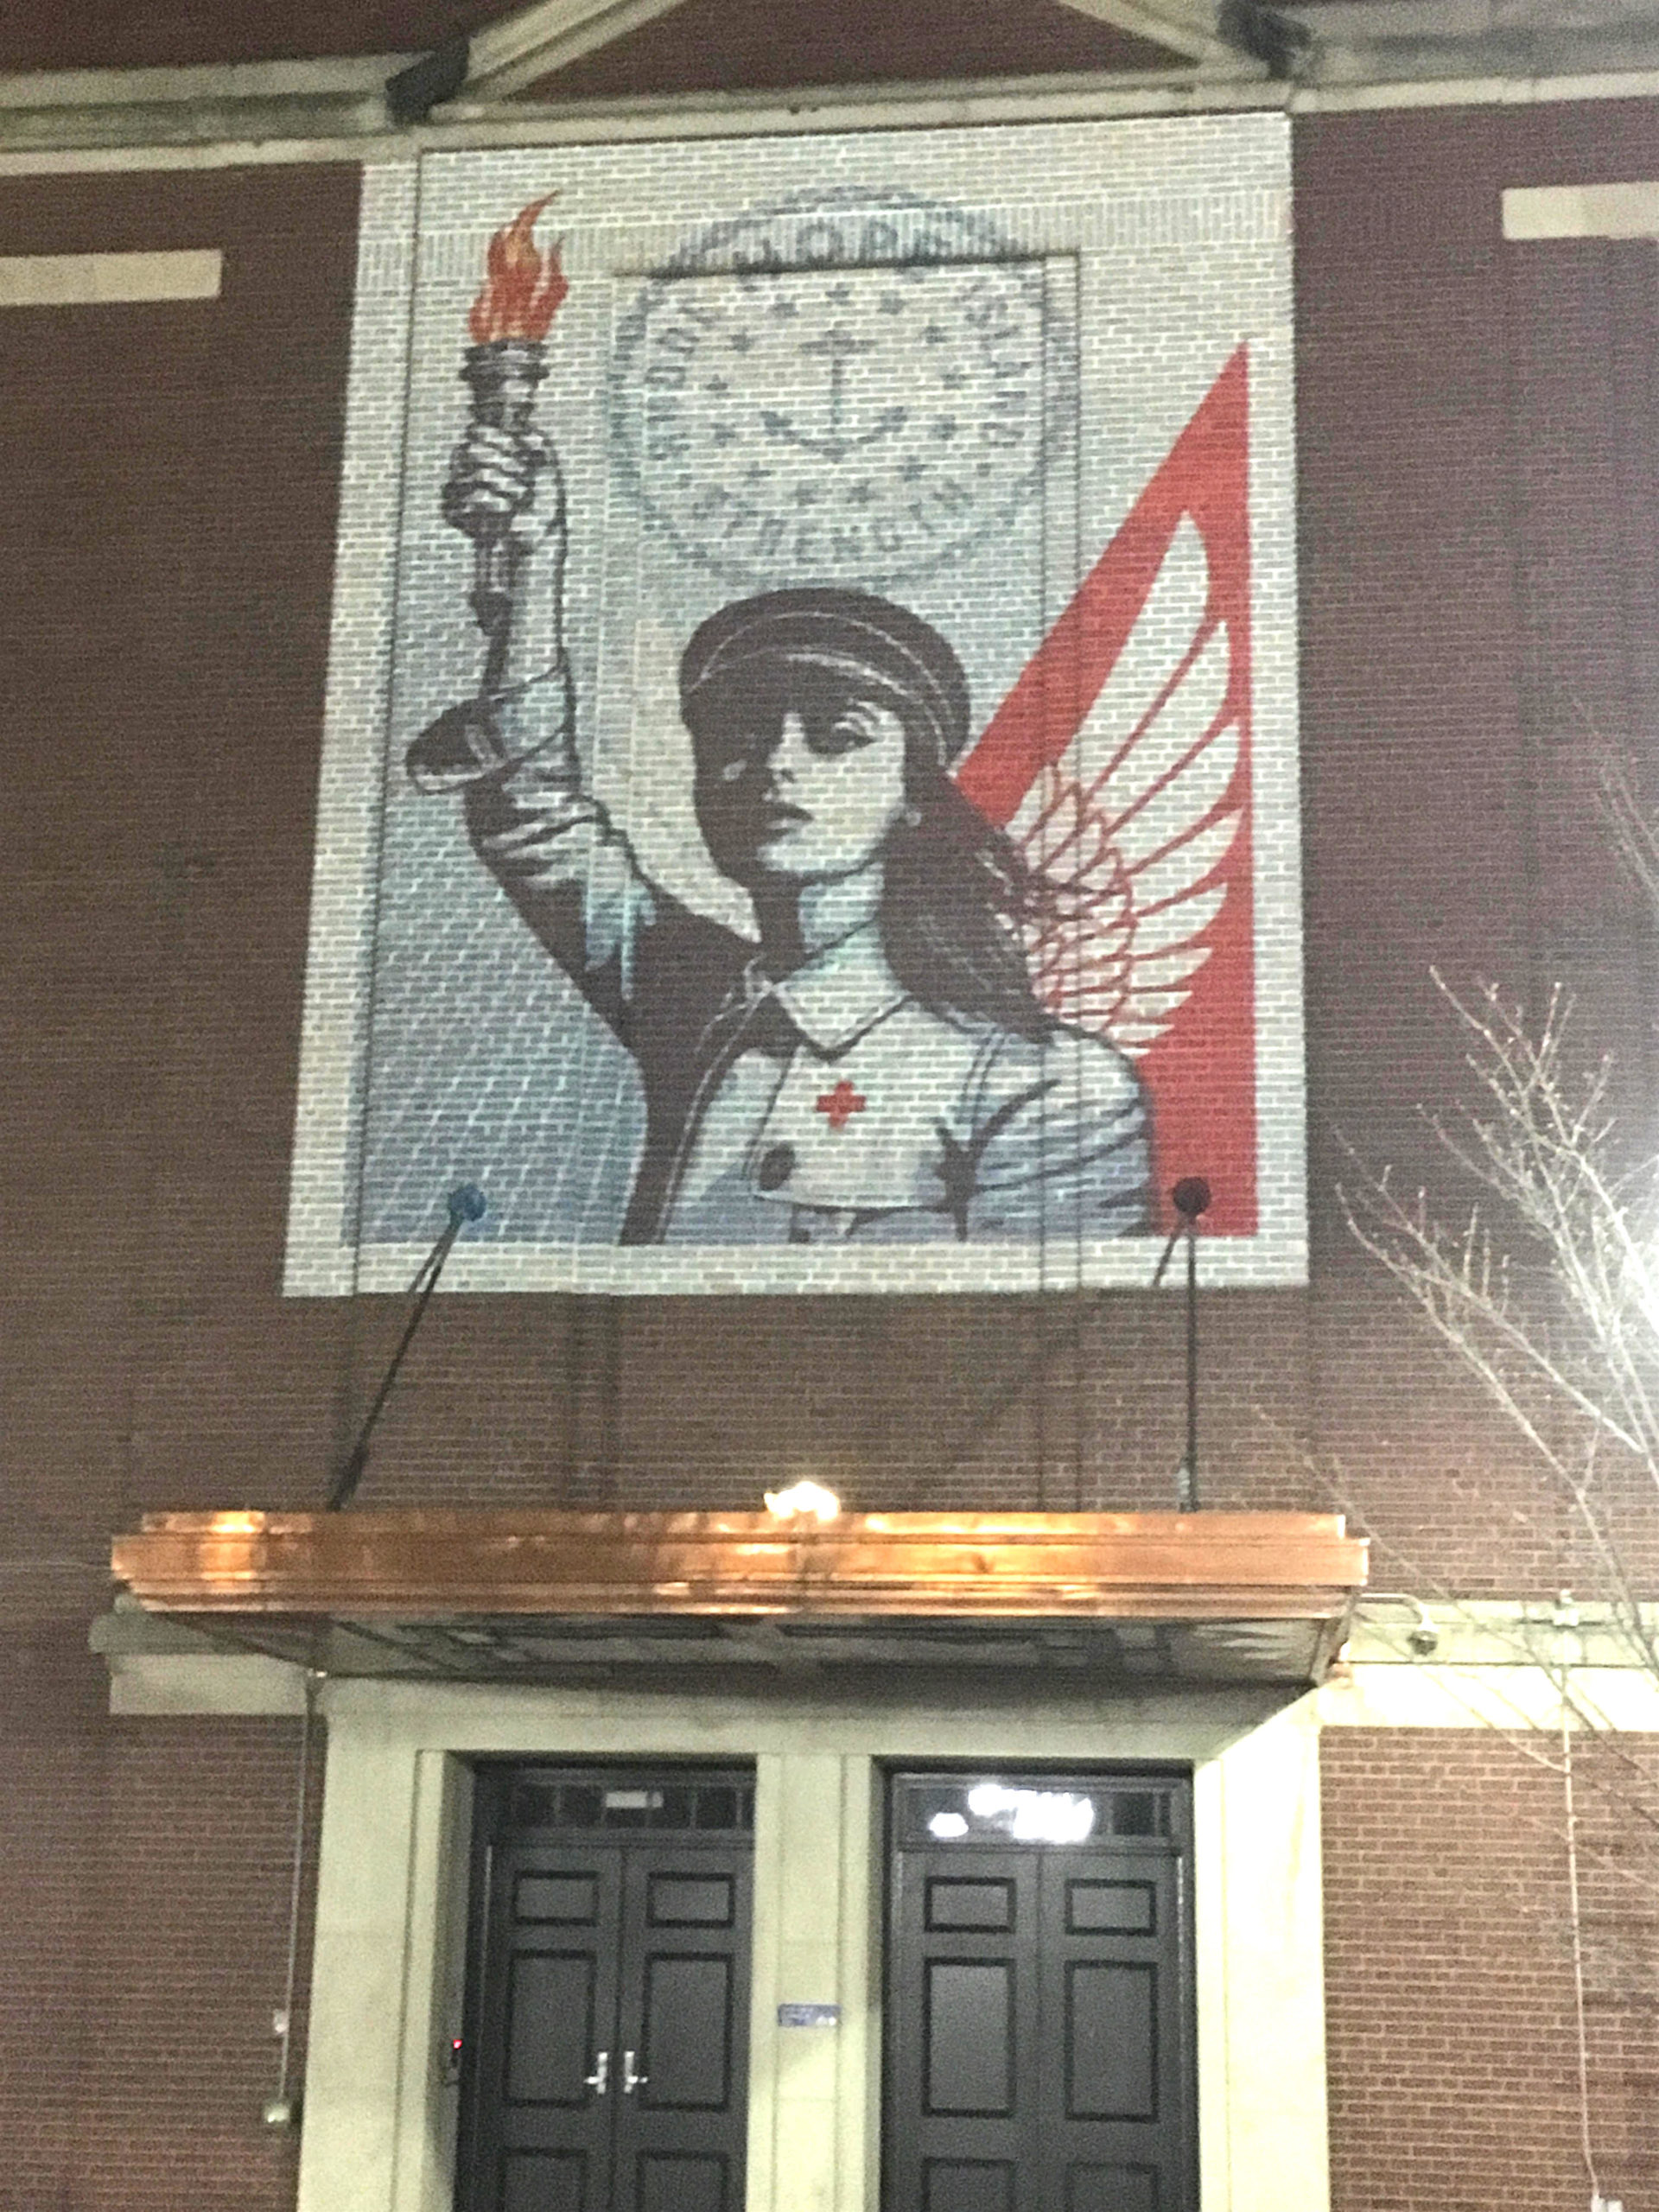 Shepherd Fairey large scale projection up through May1